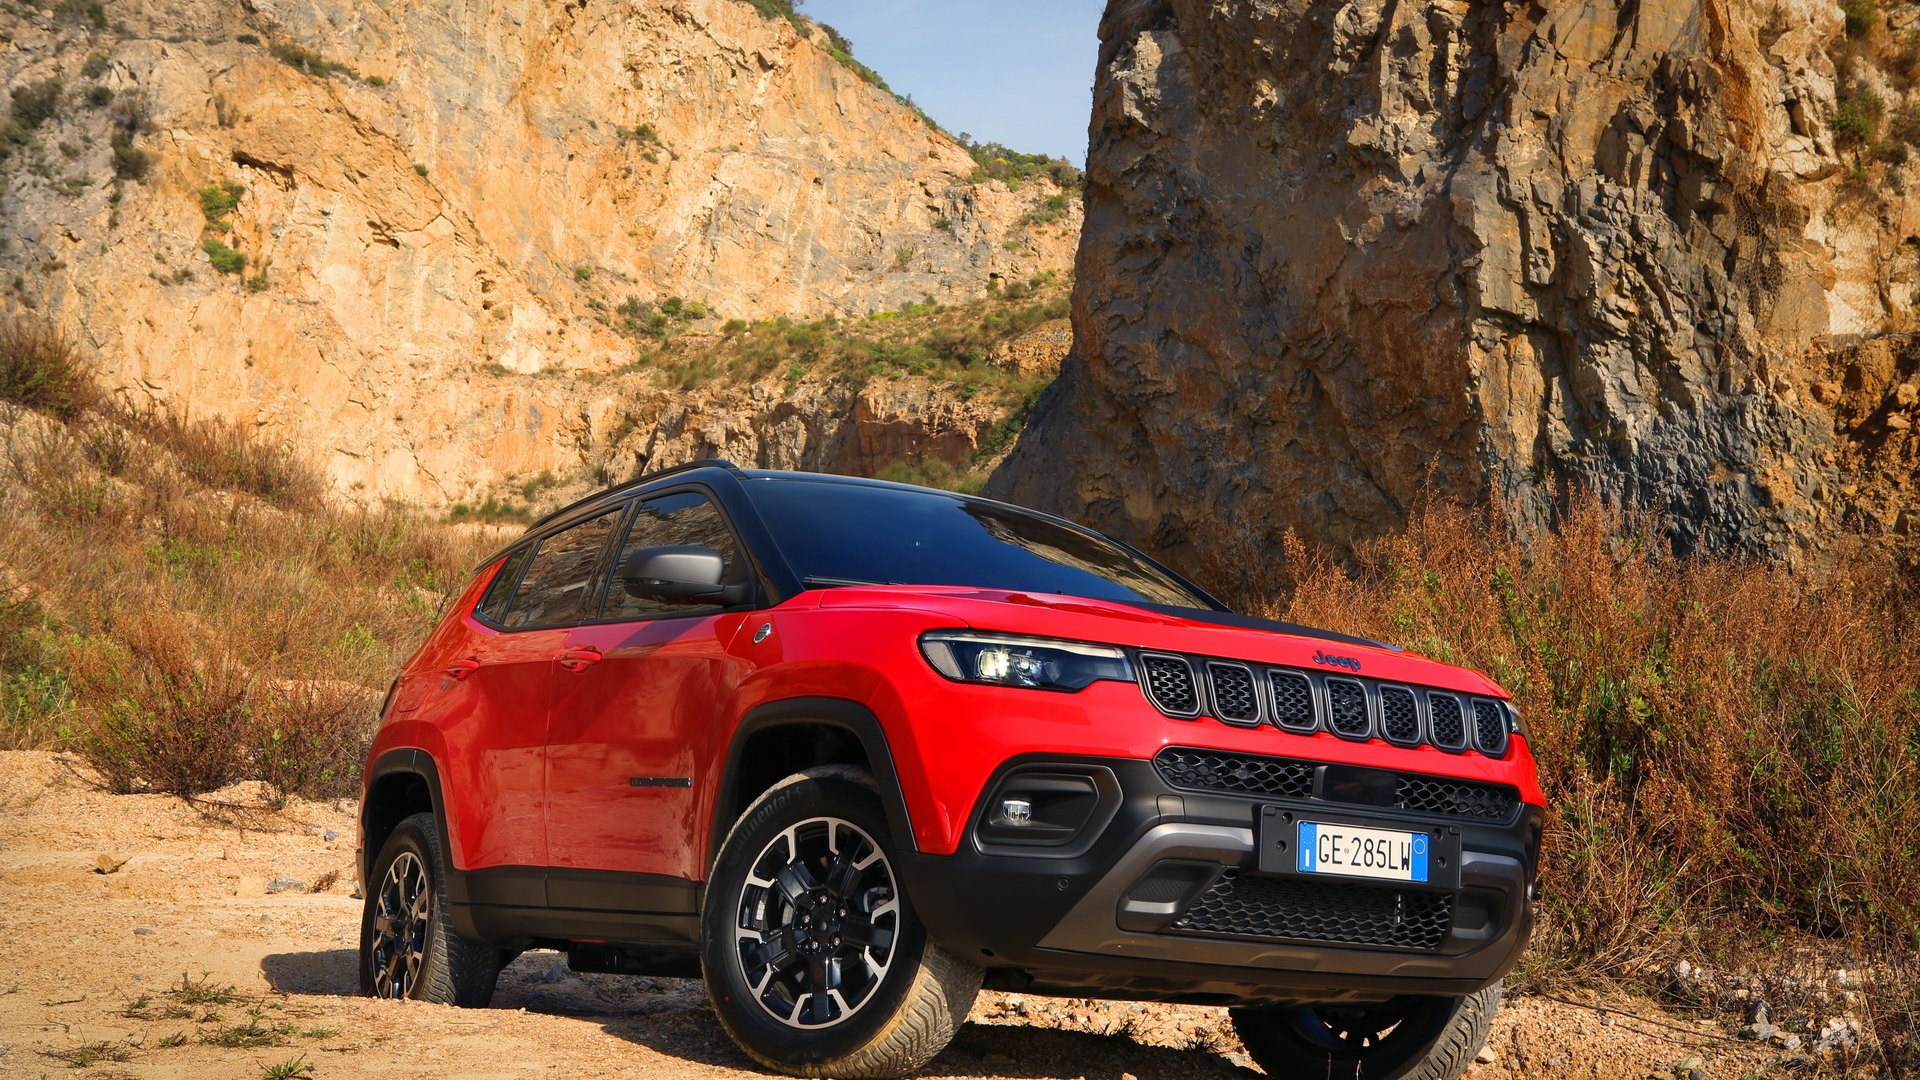 2022 Jeep Compass Trailhawk (European spec)